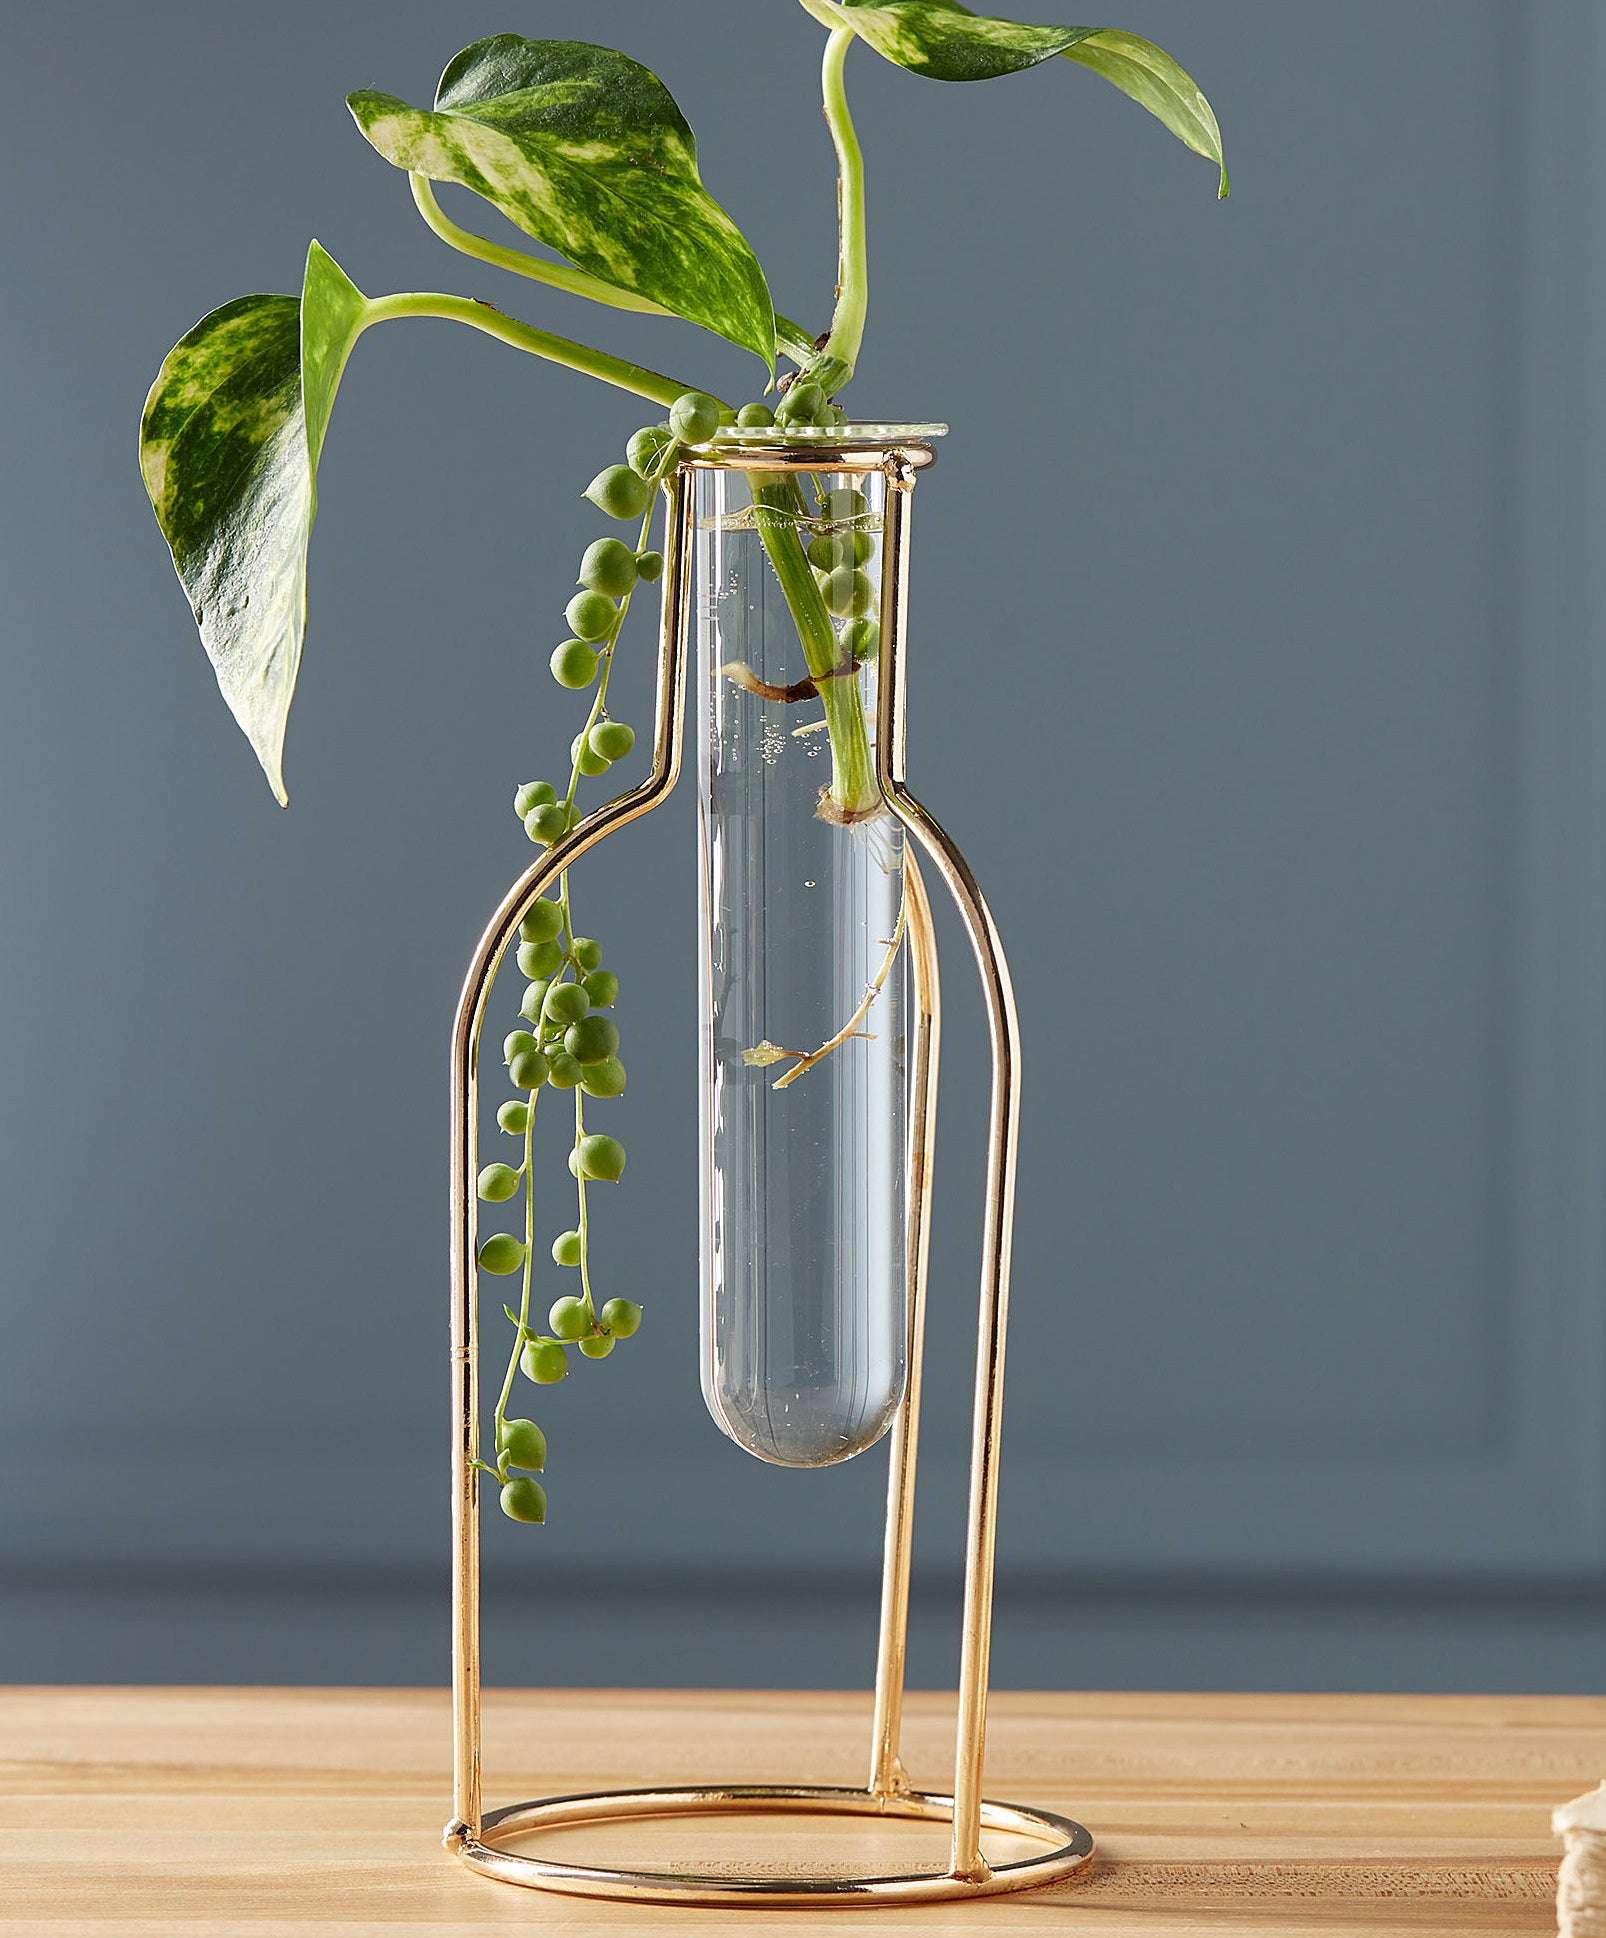 Plant clippings in the vial vase